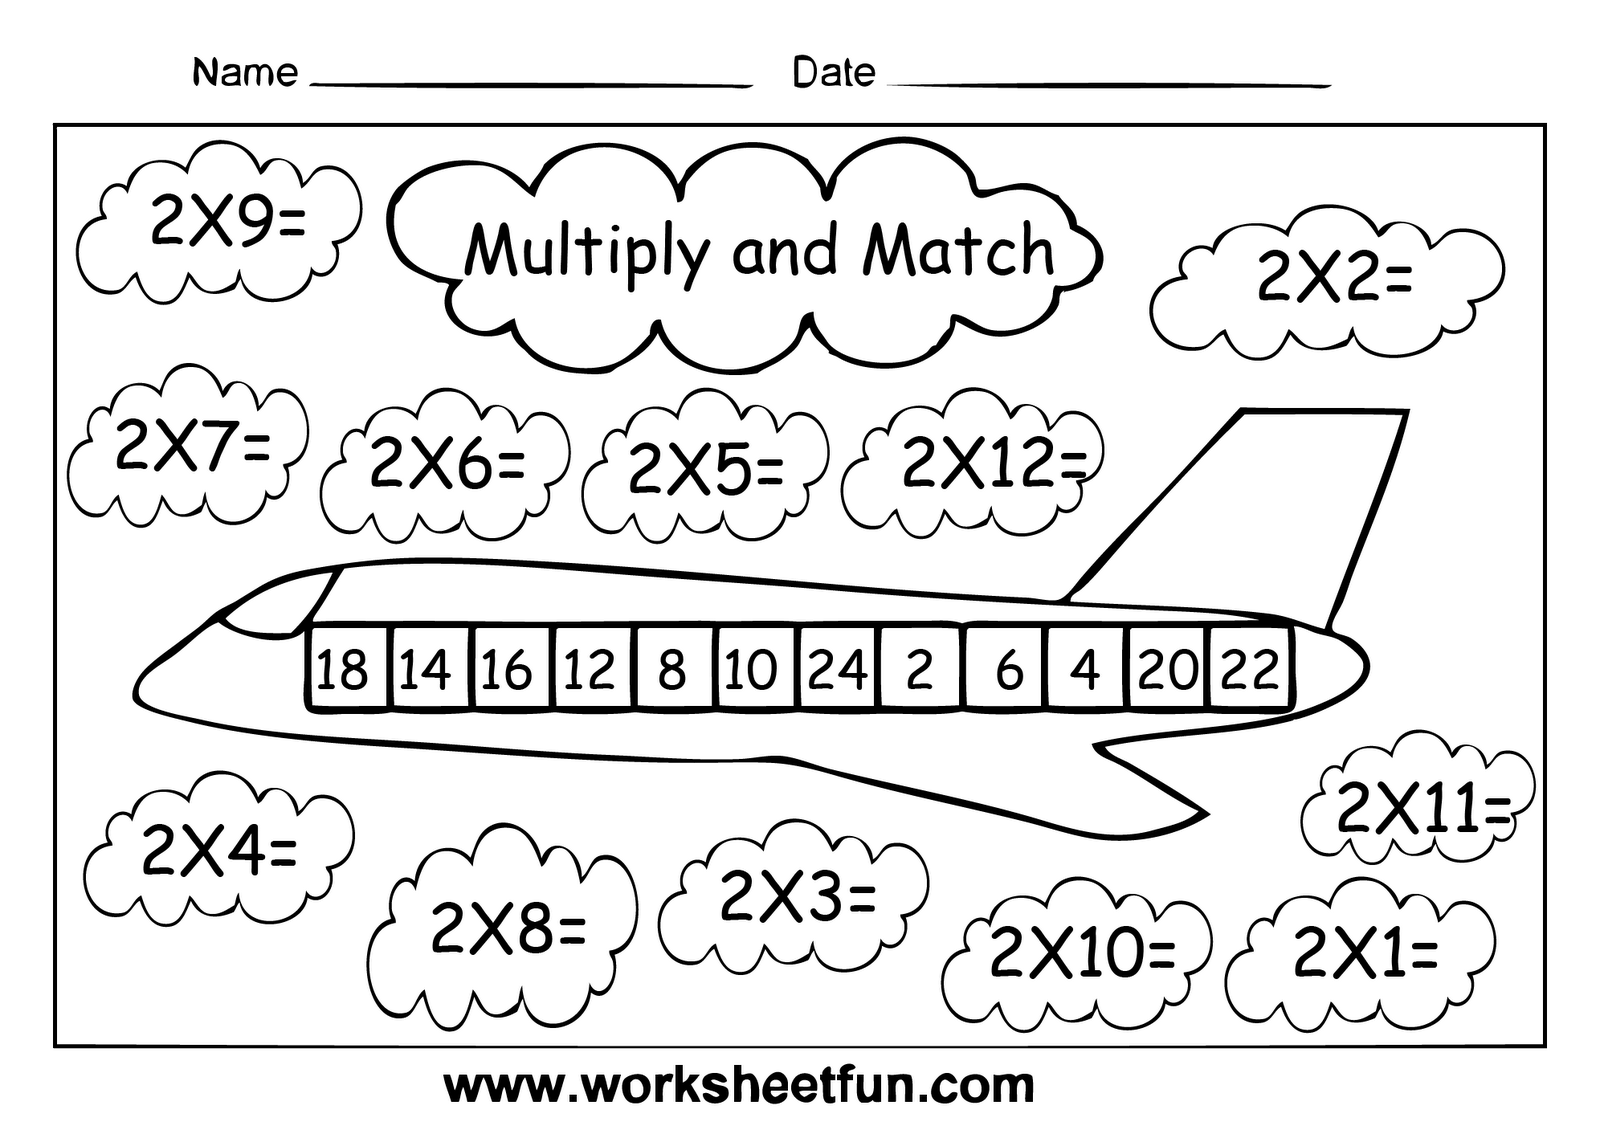 Multiplication Worksheets Year 2 Scalien – Multiplication 2 Worksheets